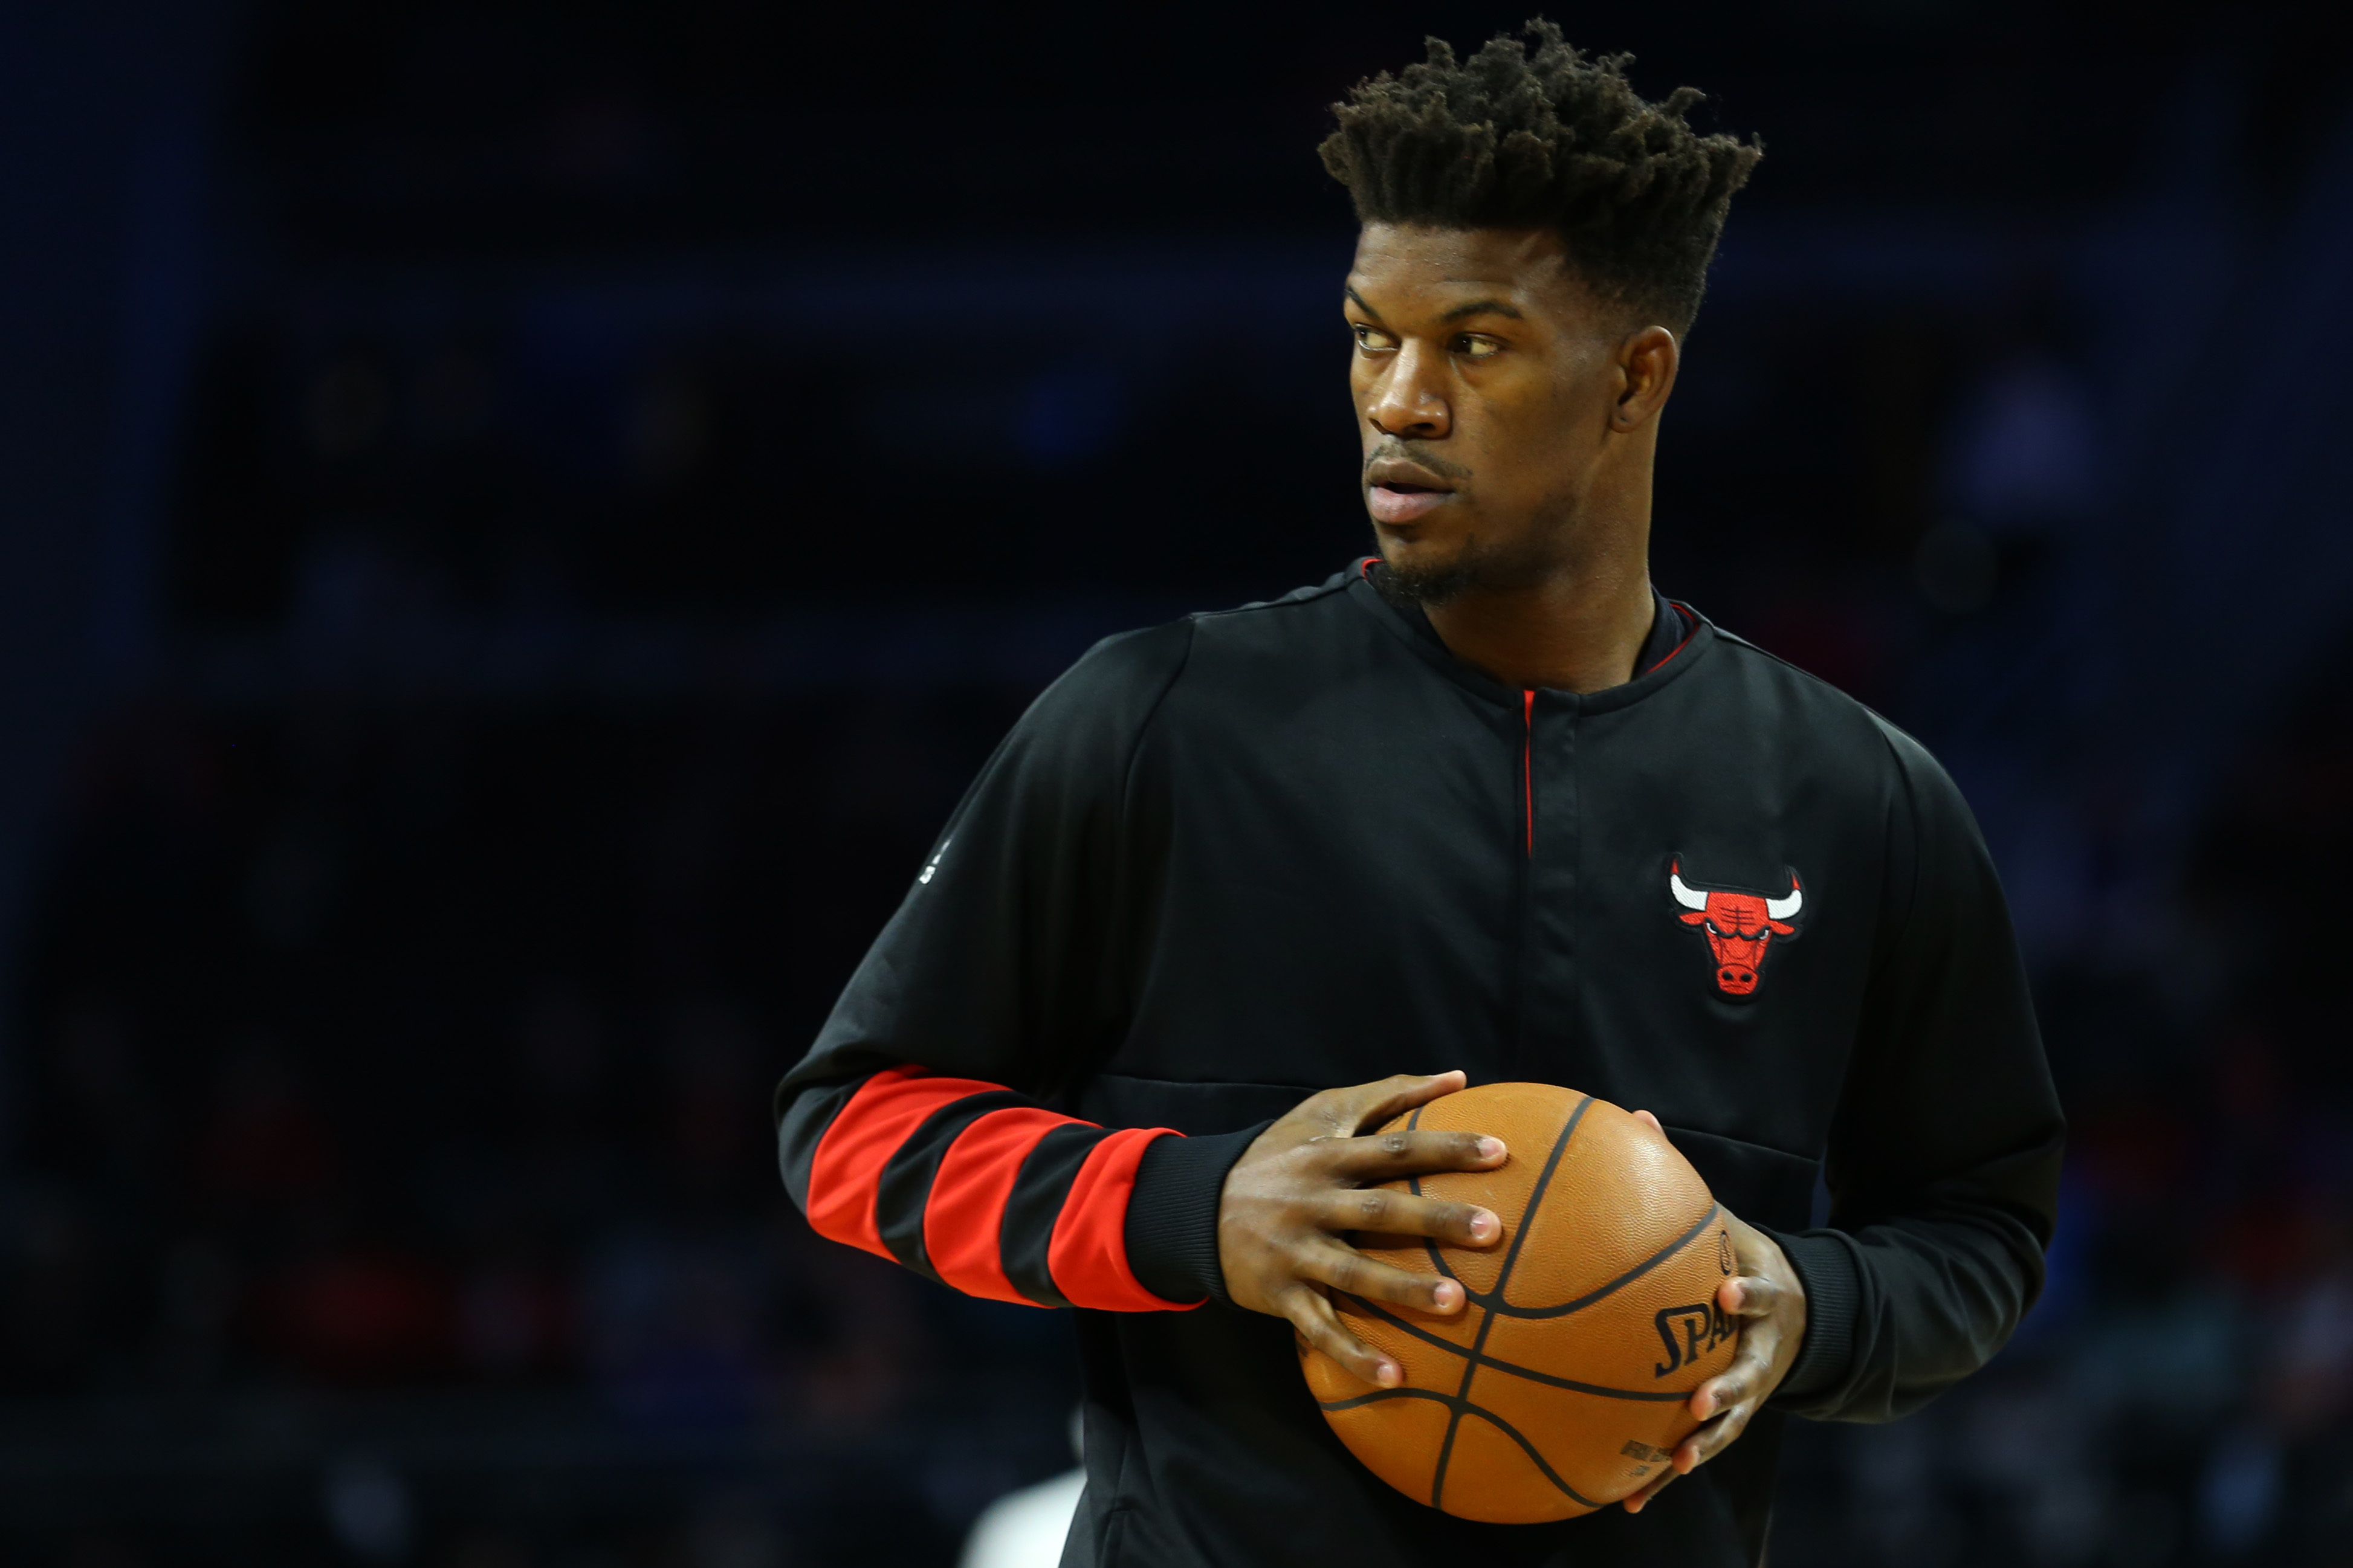 Dec 6, 2016; Auburn Hills, MI, USA; Chicago Bulls forward Jimmy Butler (21) against the Detroit Pistons at The Palace of Auburn Hills. The Pistons won 102-91.Mandatory Credit: Aaron Doster-USA TODAY Sports